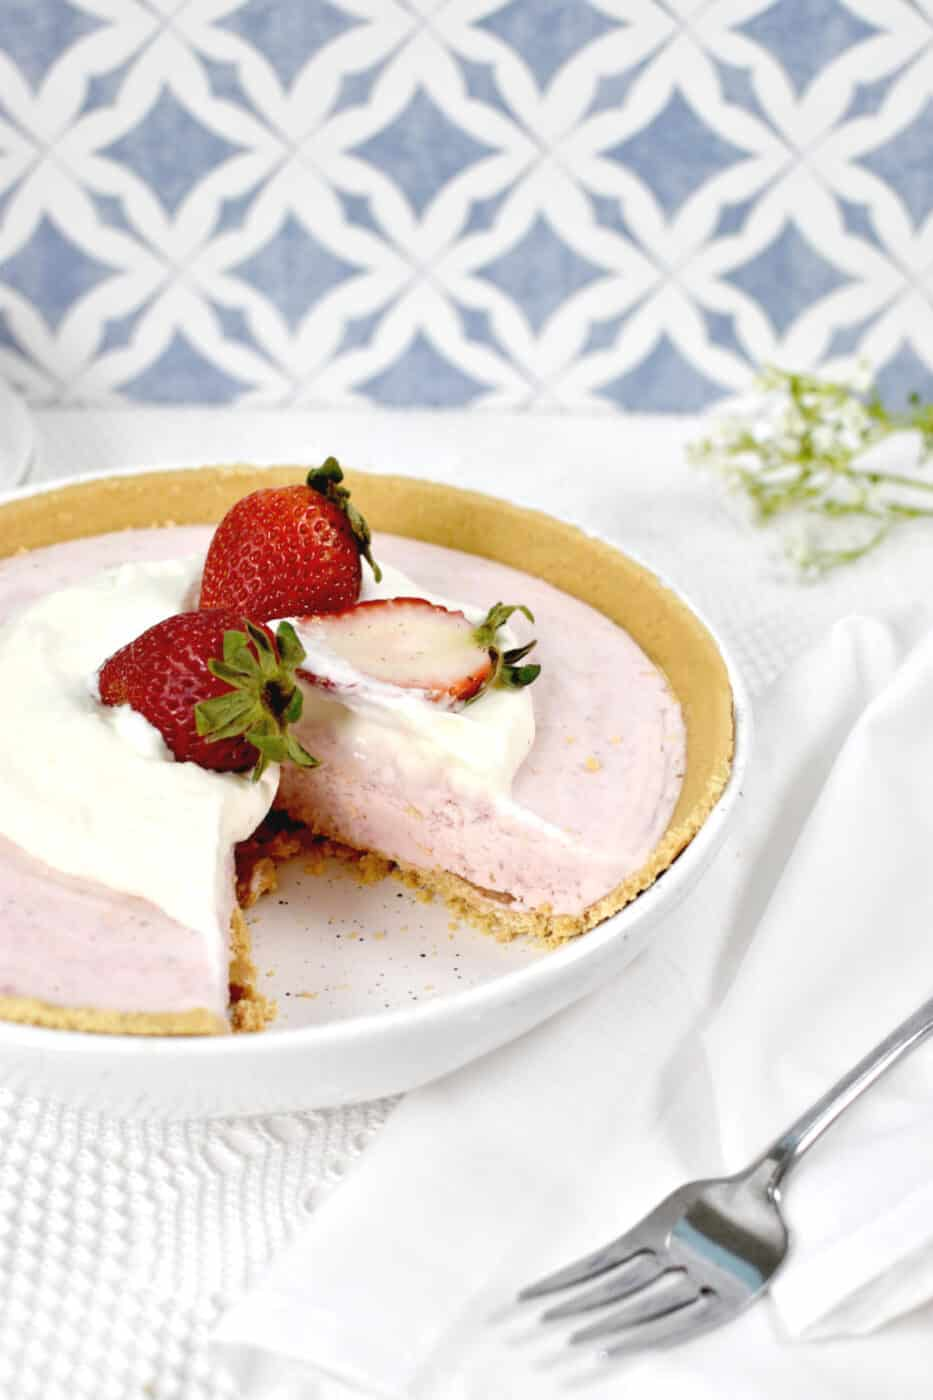 Frozen strawberry pie with whipped cream and strawberries on top, missing one slice